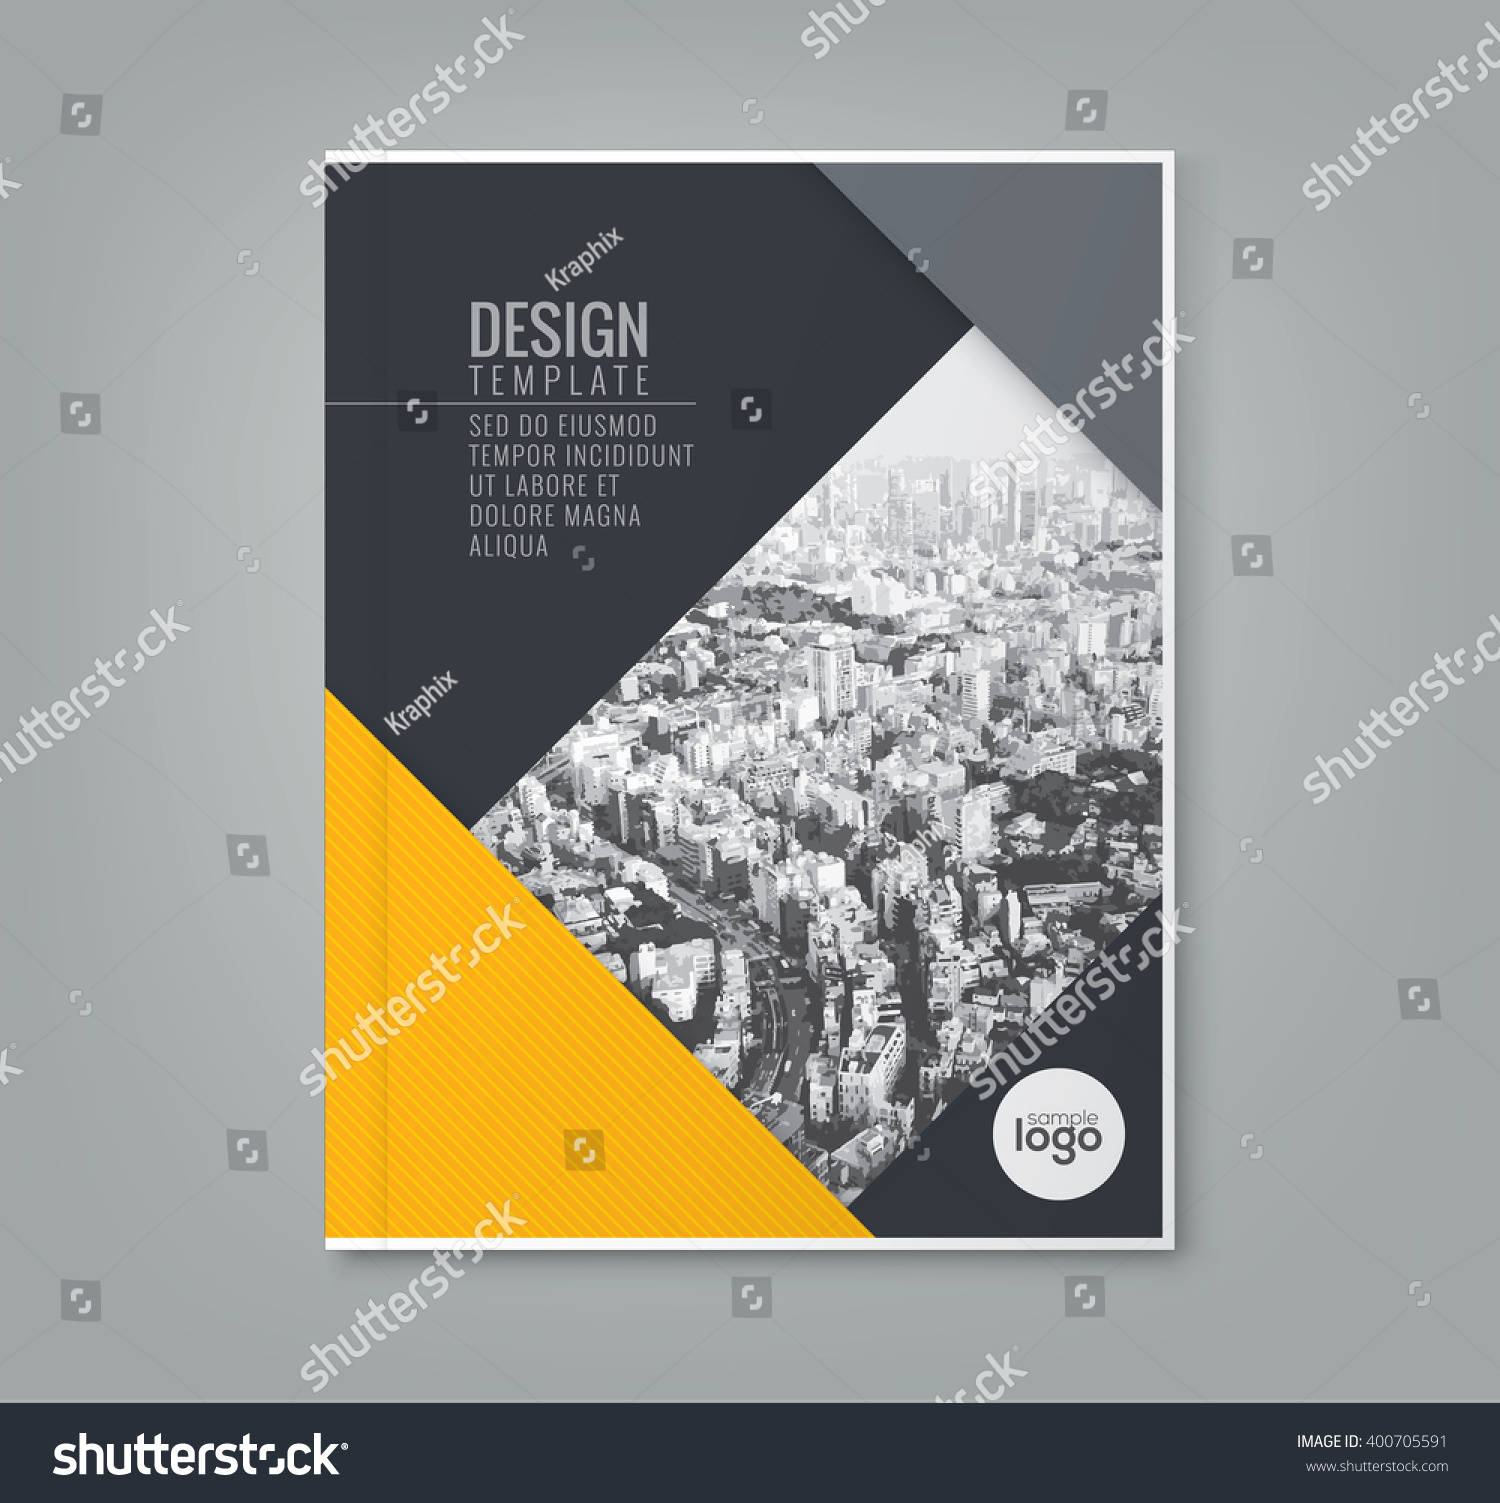 basic brochure template - minimal simple yellow color design template stock vector